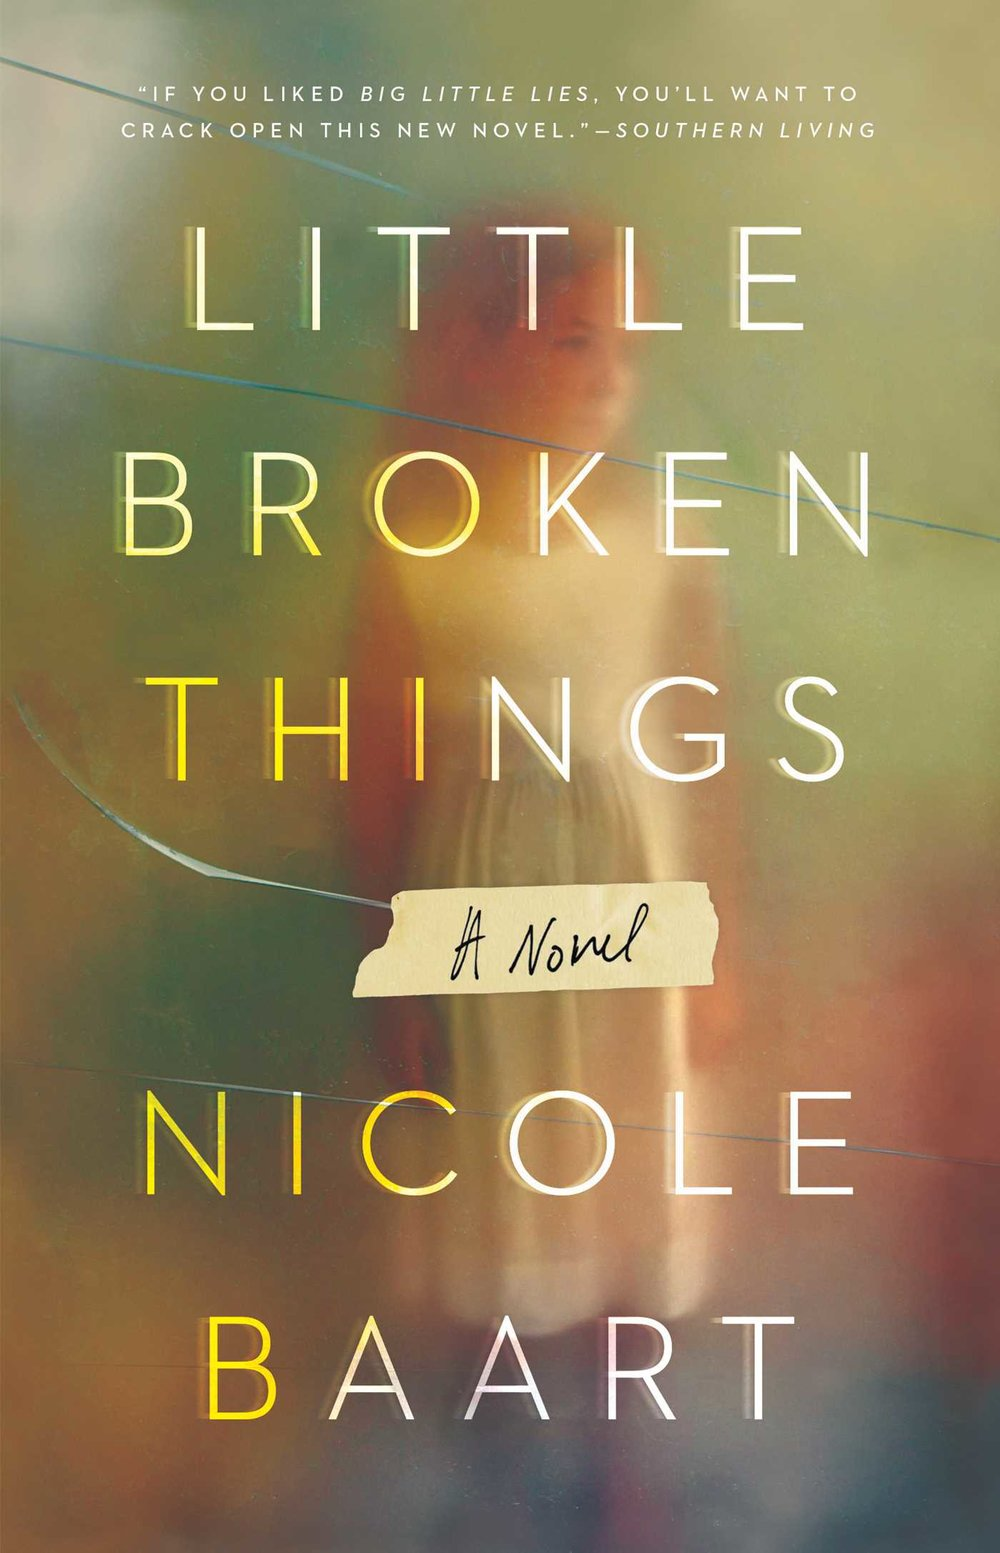 little-broken-things-9781501133602_hr.jpg